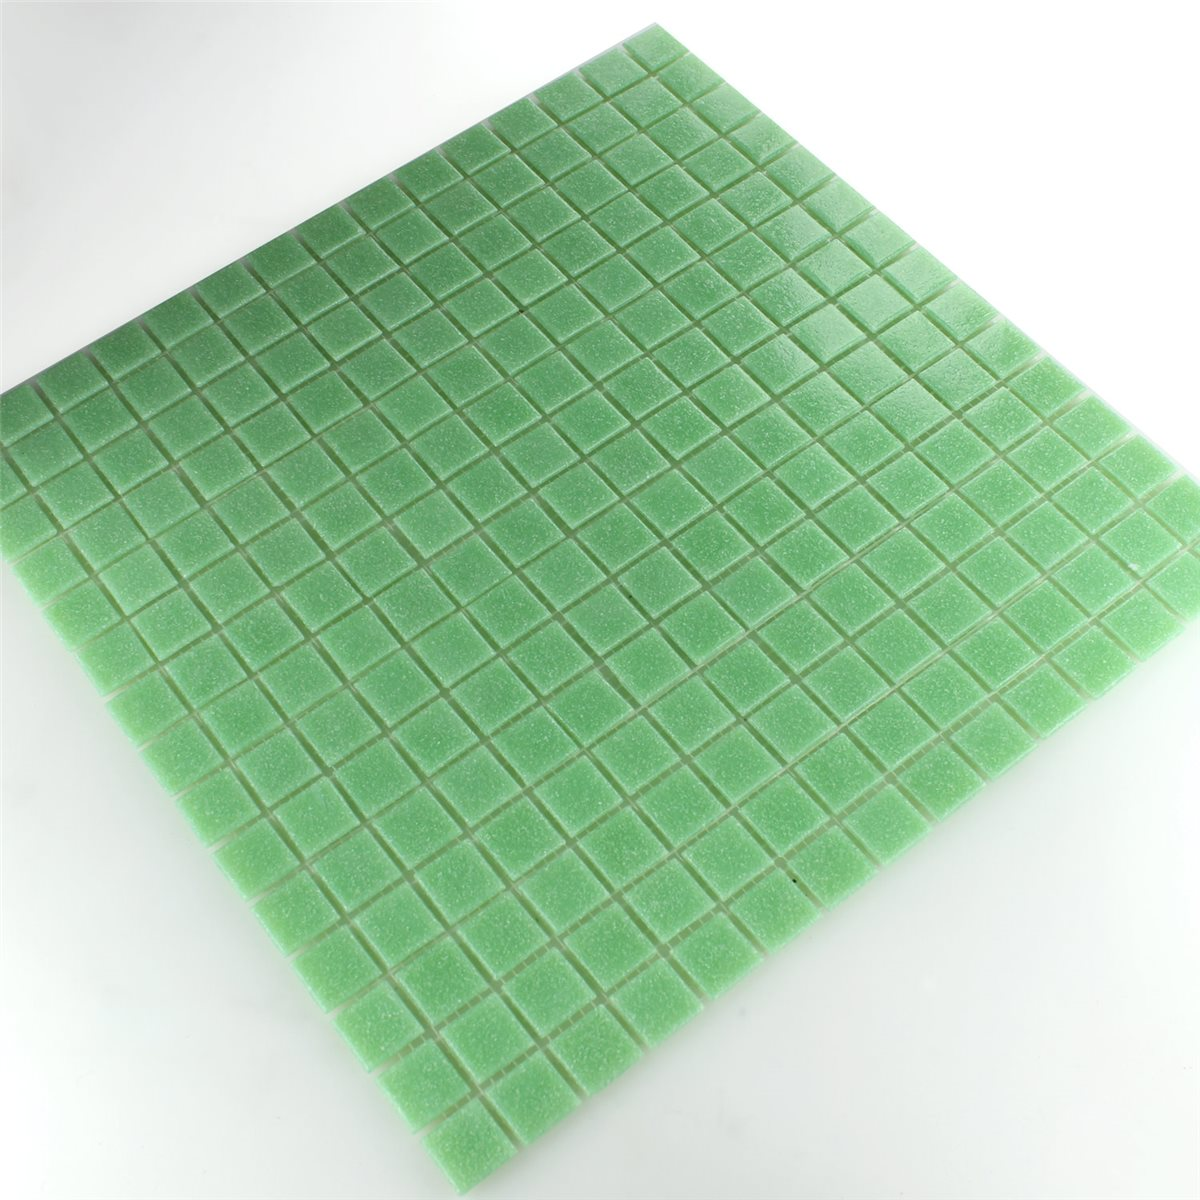 glass mosaic tiles 20x20x4mm light green. Black Bedroom Furniture Sets. Home Design Ideas